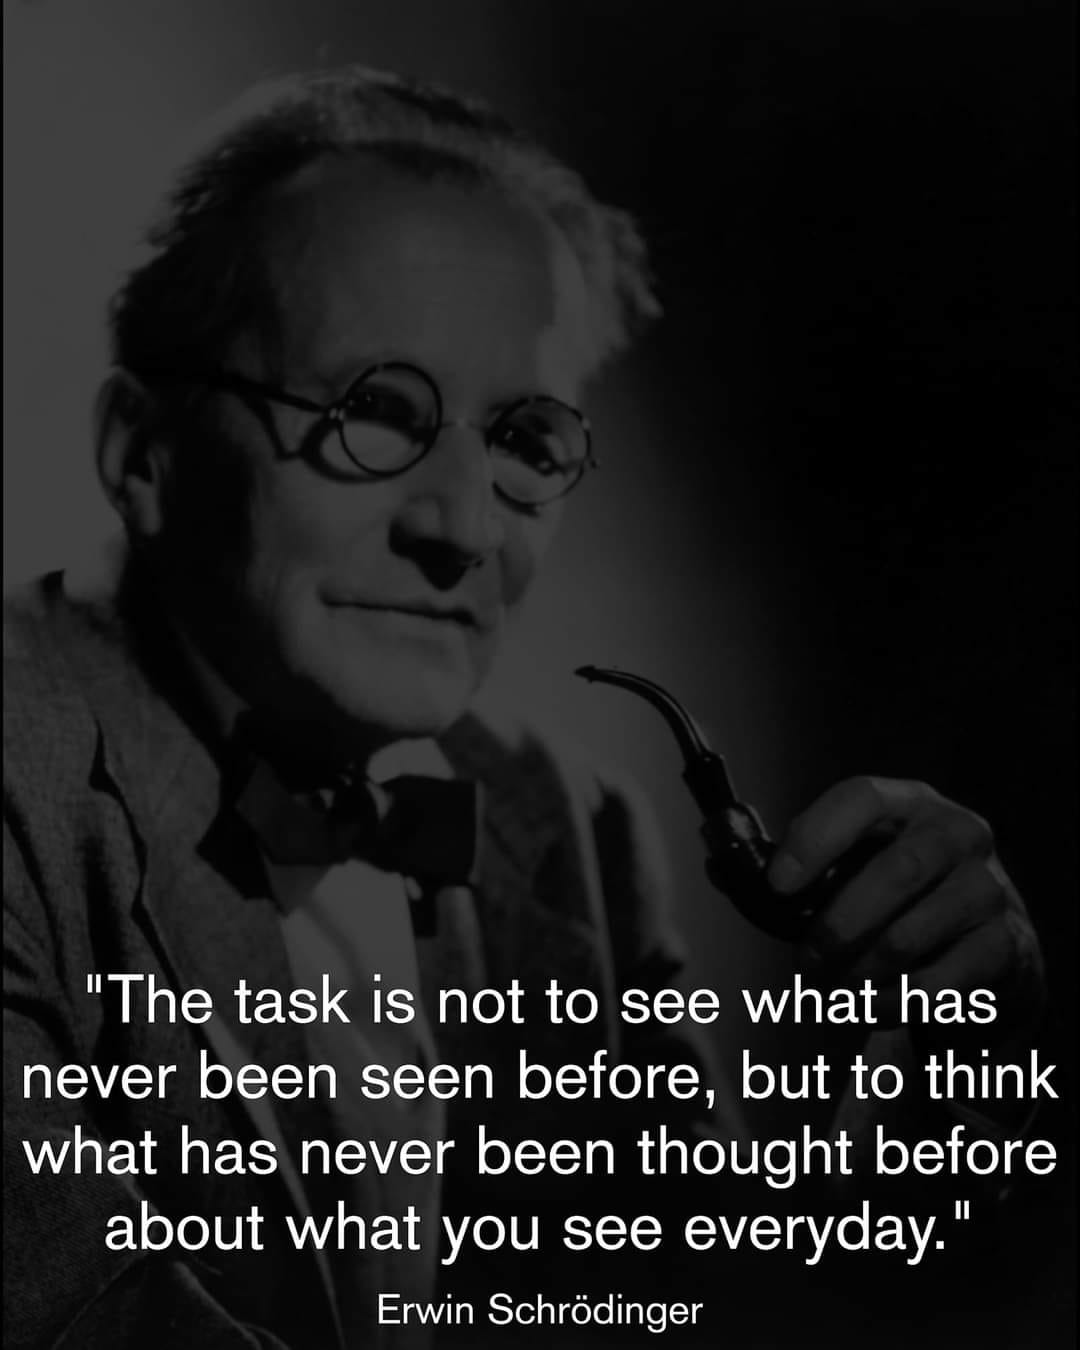 """The task is not to see what has never been seen before, but to think what has never been thought before about what you see everyday."" – Erwin Schrodinger [1080 × 1350]"